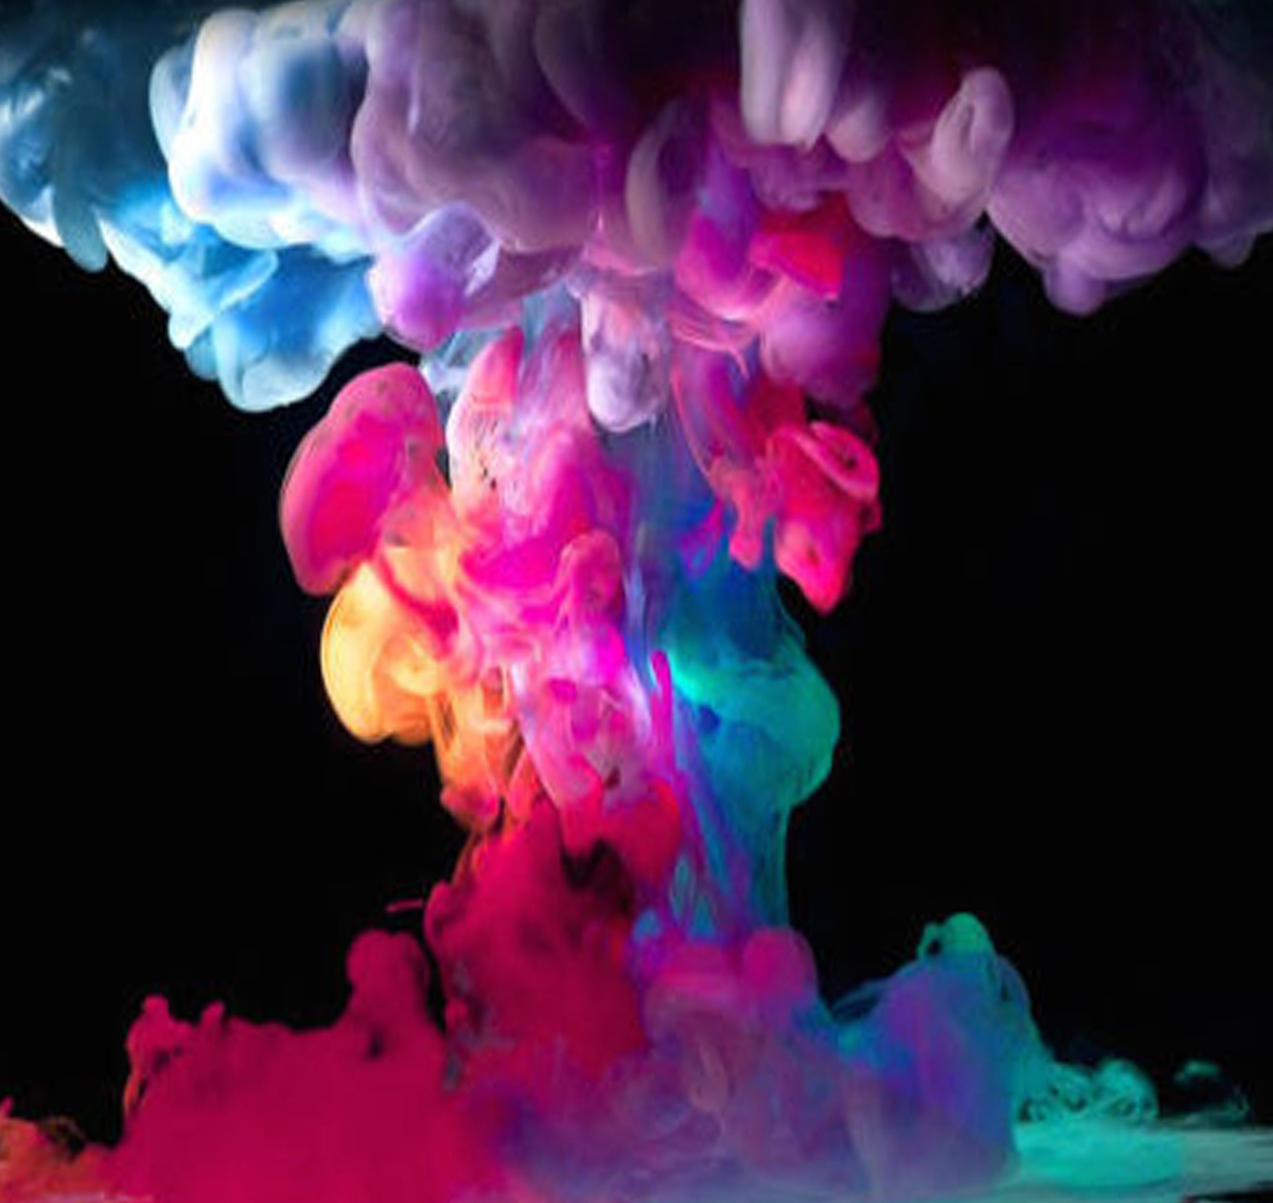 Download 160 Cool Wallpapers A Gallery of Digital 1273x1203